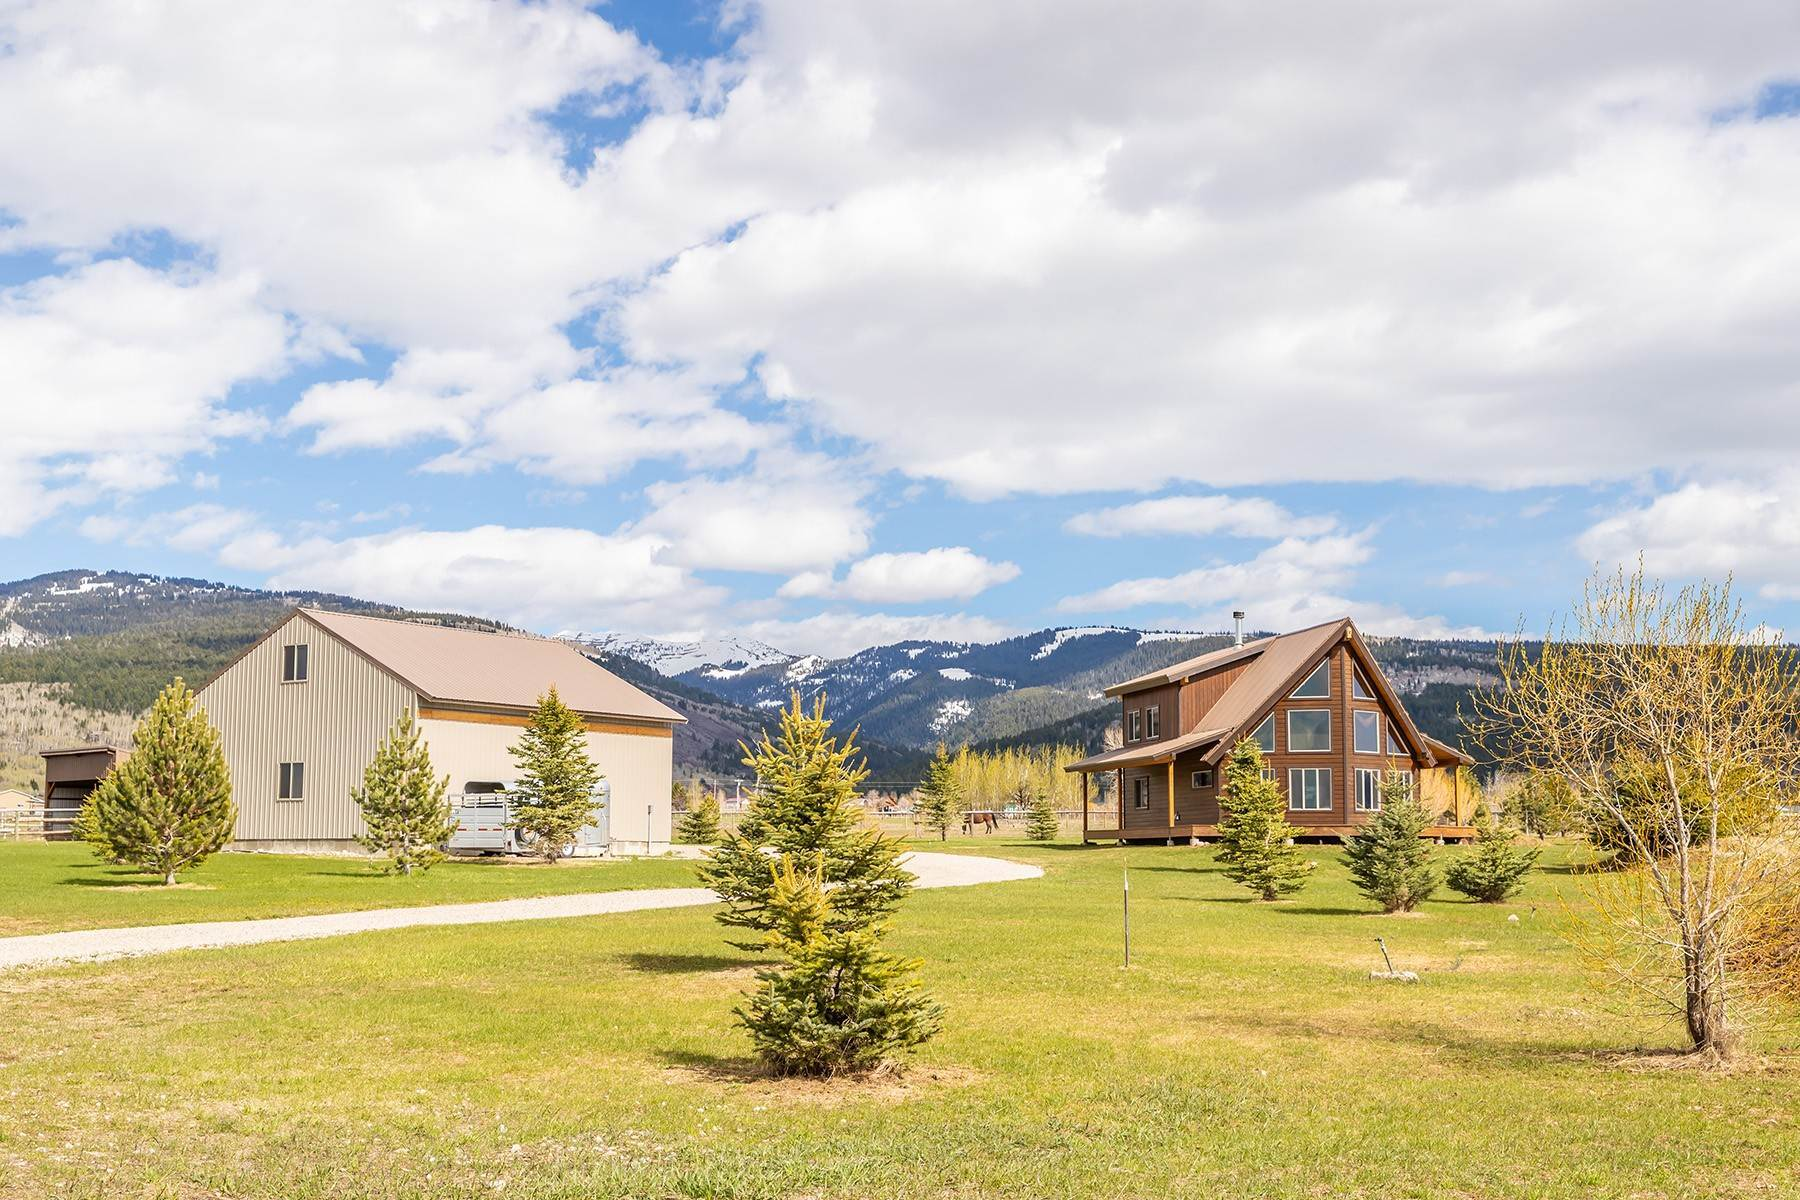 Single Family Homes for Sale at Rare Victor Offering on 8+ Acres 4399 Barrel Roll Trail Victor, Idaho 83455 United States